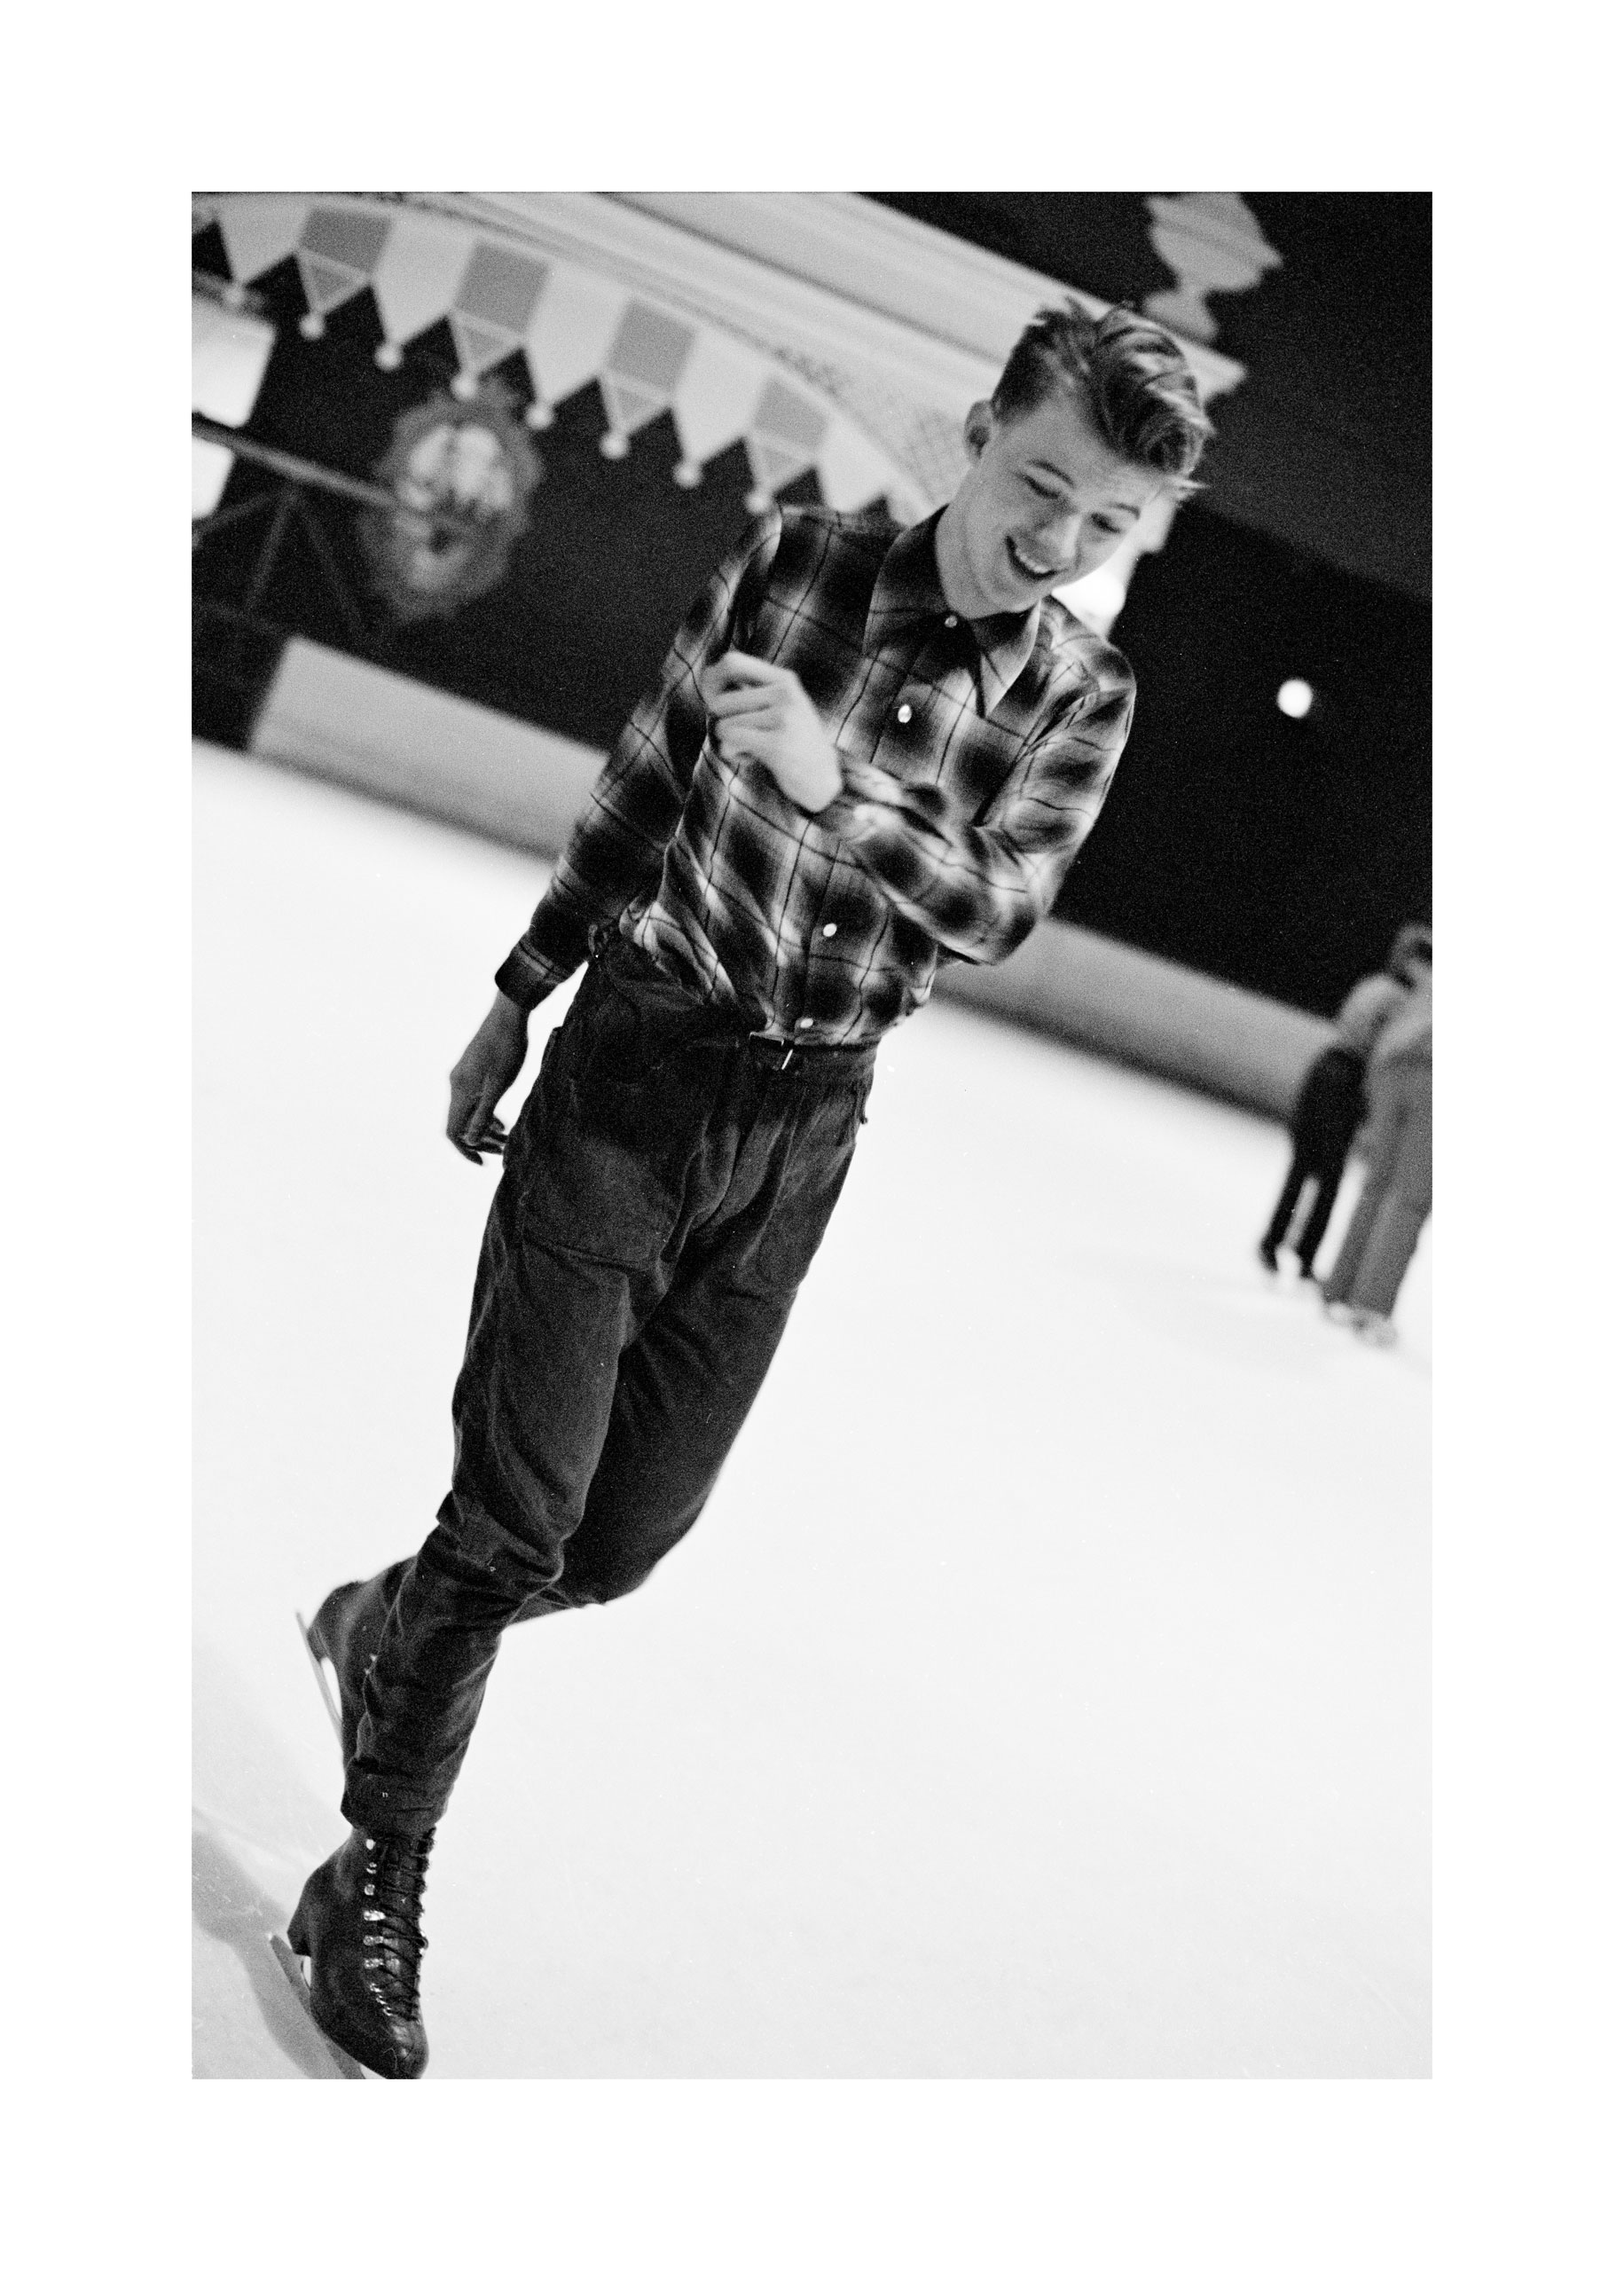 Image of Edwyn Collins (Skating) by HARRY PAPADOPOULOS